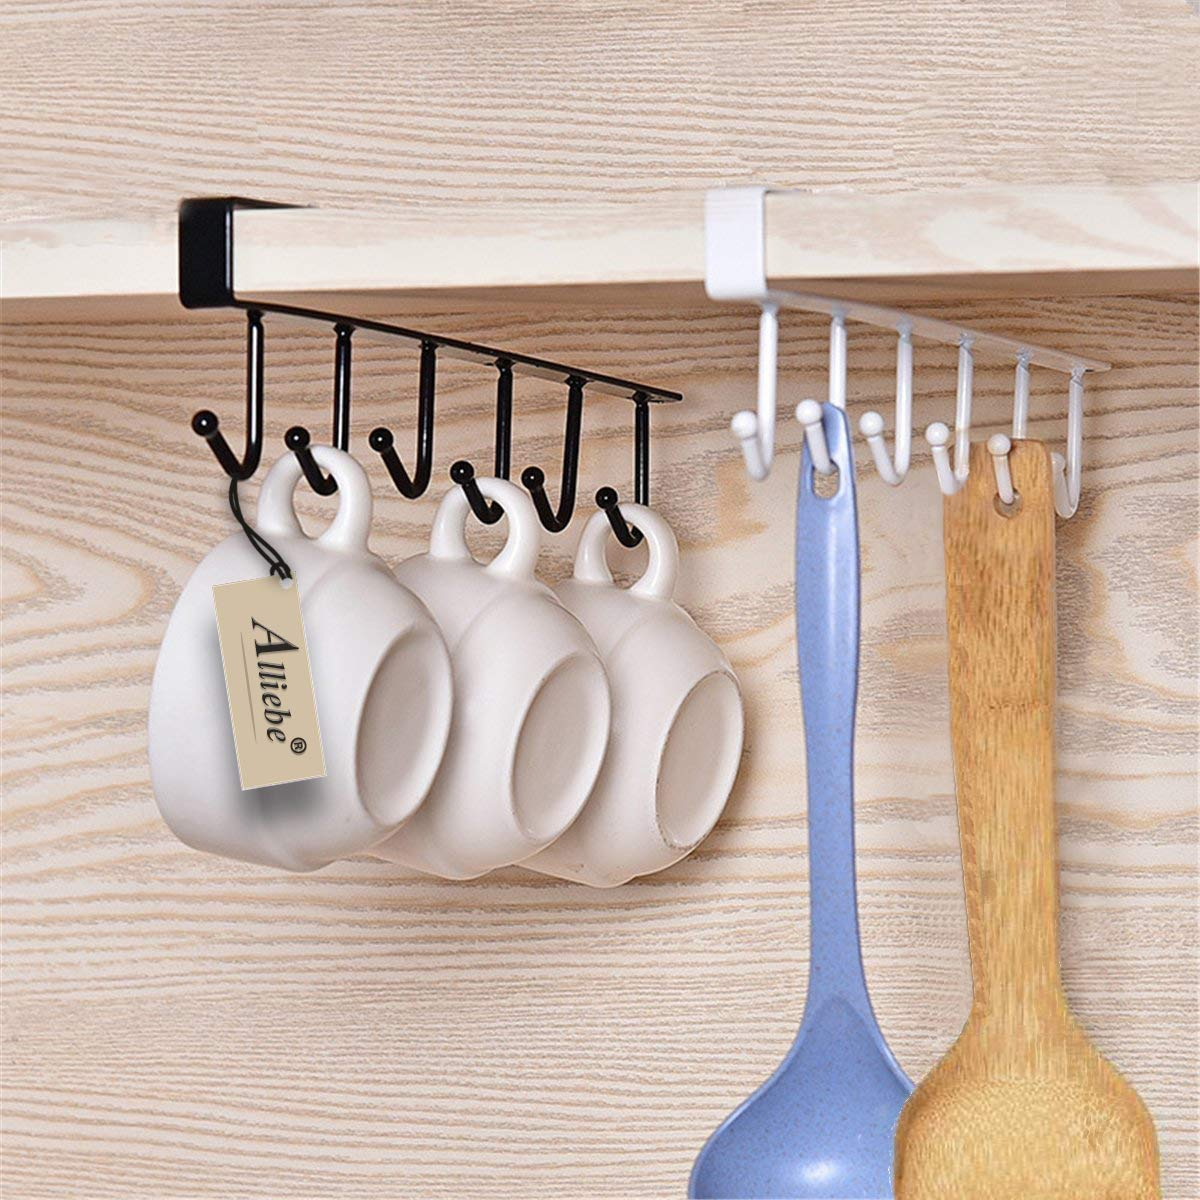 Effective Cabinet Hooks As A Storage Solution